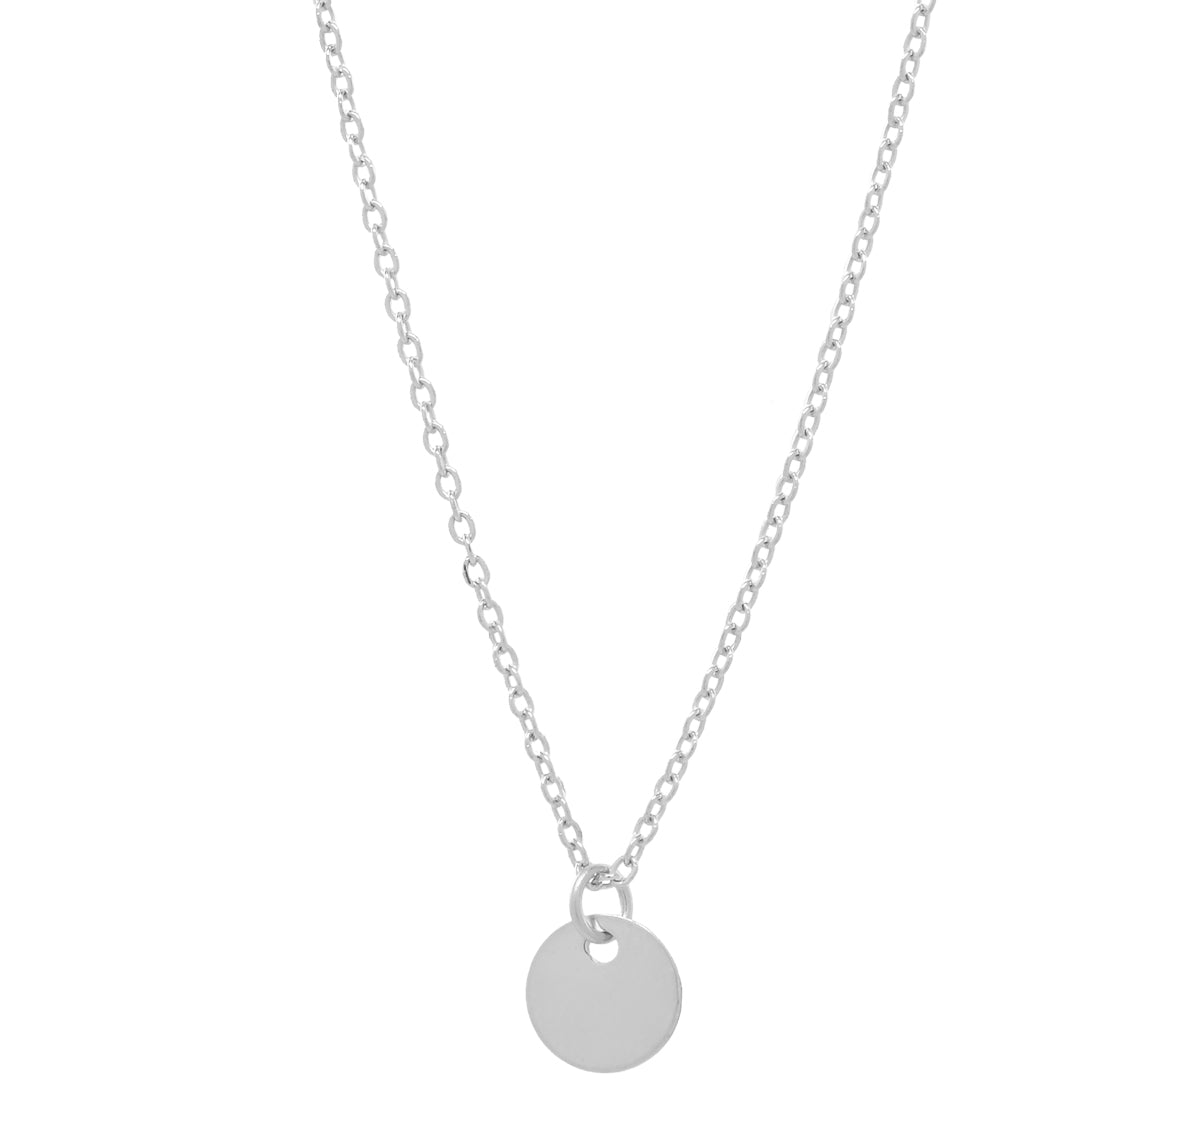 Solid Gold Tiny Disc on Thin Chain Necklace